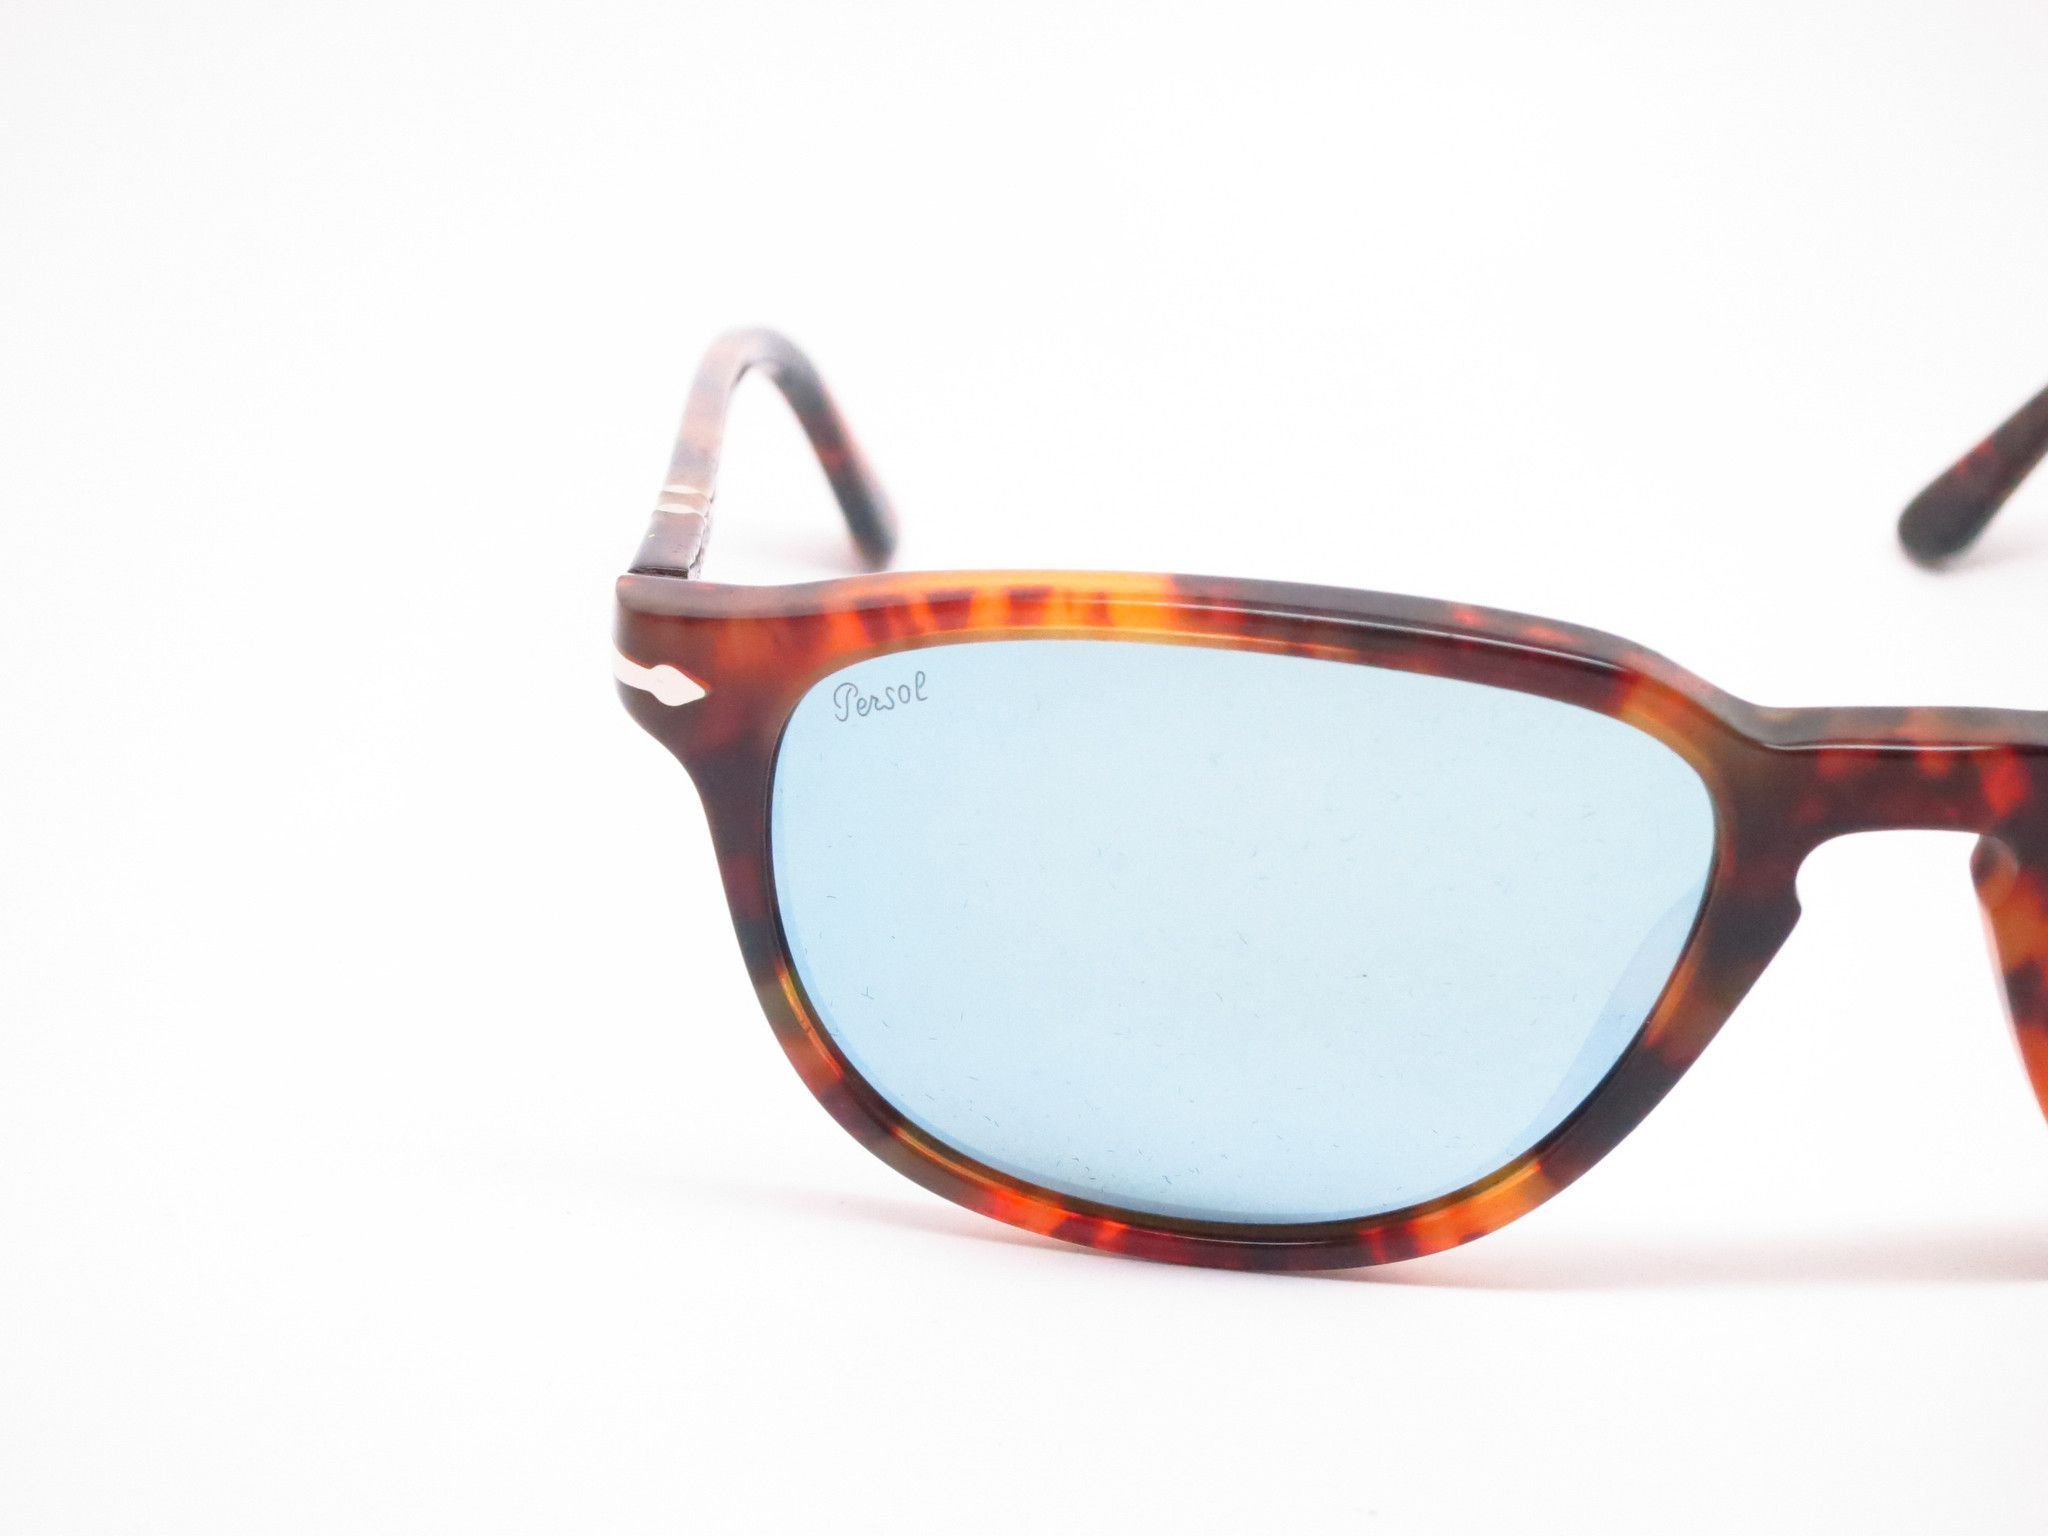 8116c980976e Product Details of Persol PO 3019S Sunglasses Brand   Persol Model Name    PO 3019S Color